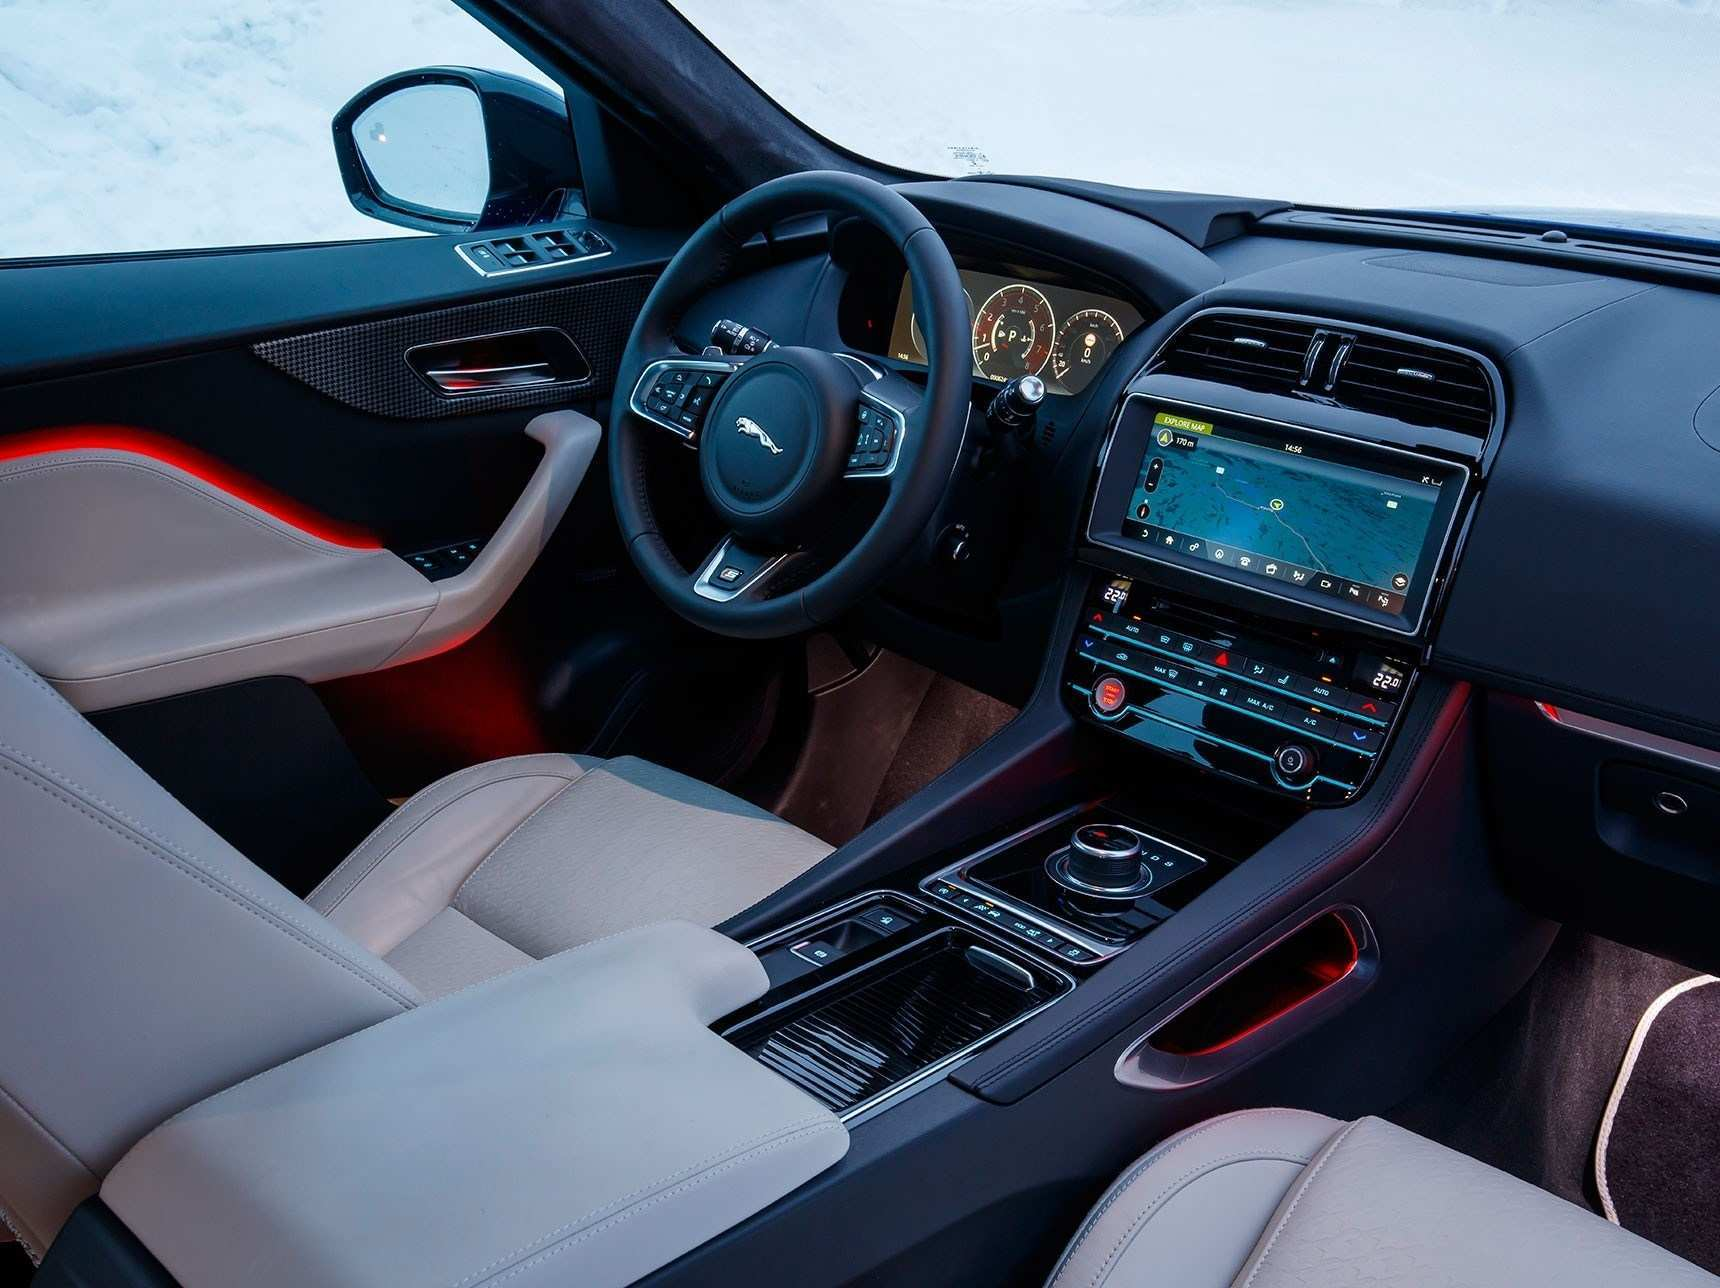 57 New Jaguar F Pace 2019 Interior Interior